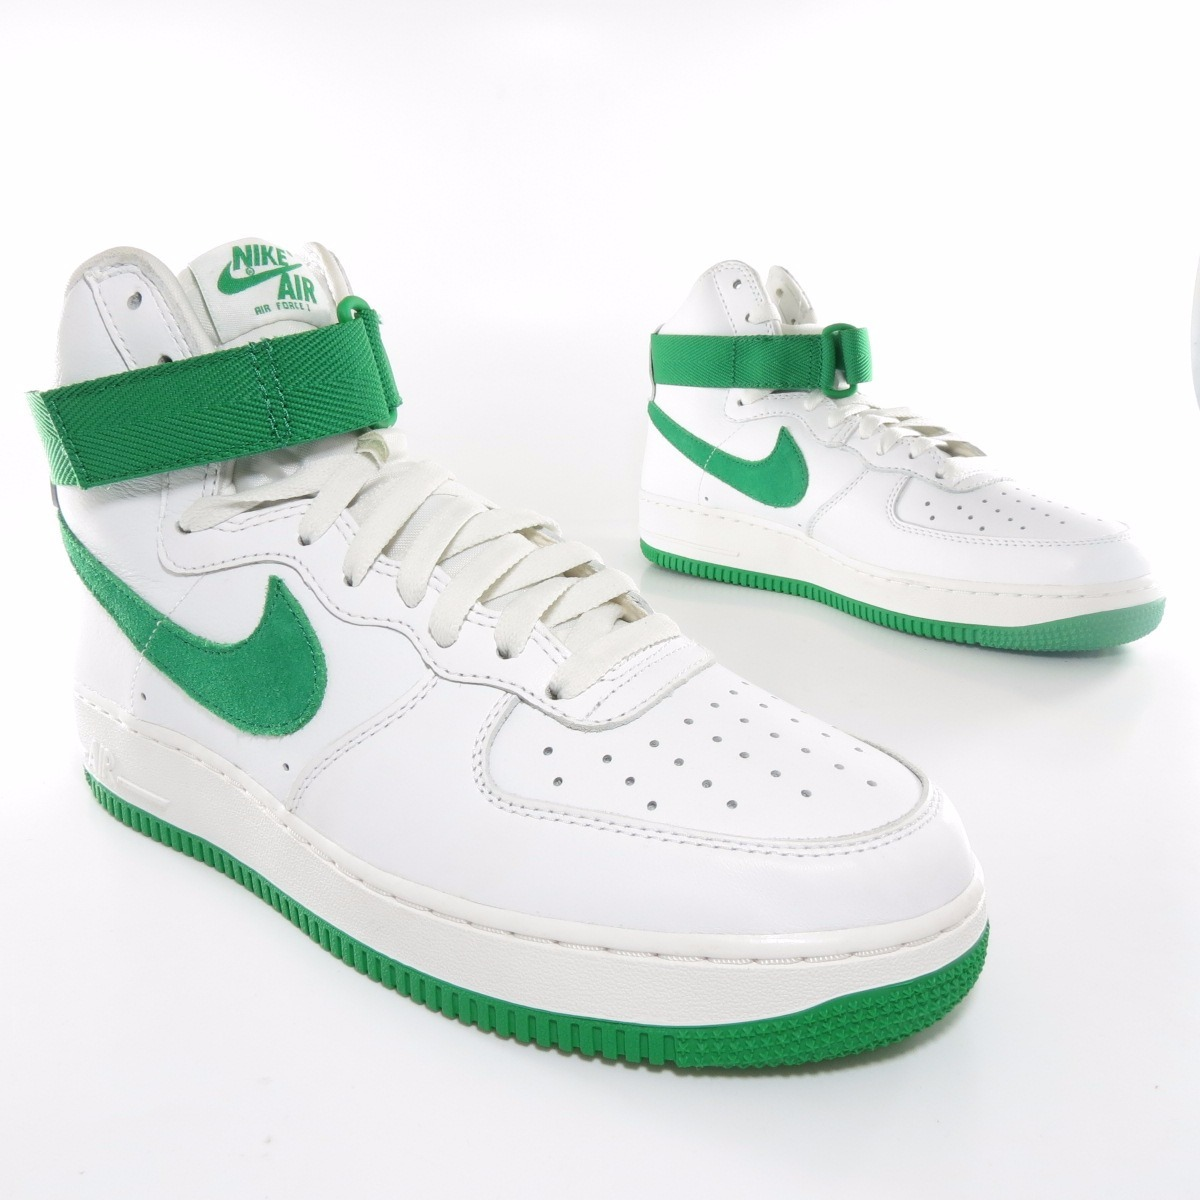 962a2b8321e ... promo code for tenis nike air force 1 high branco verde. carregando zoom.  shades